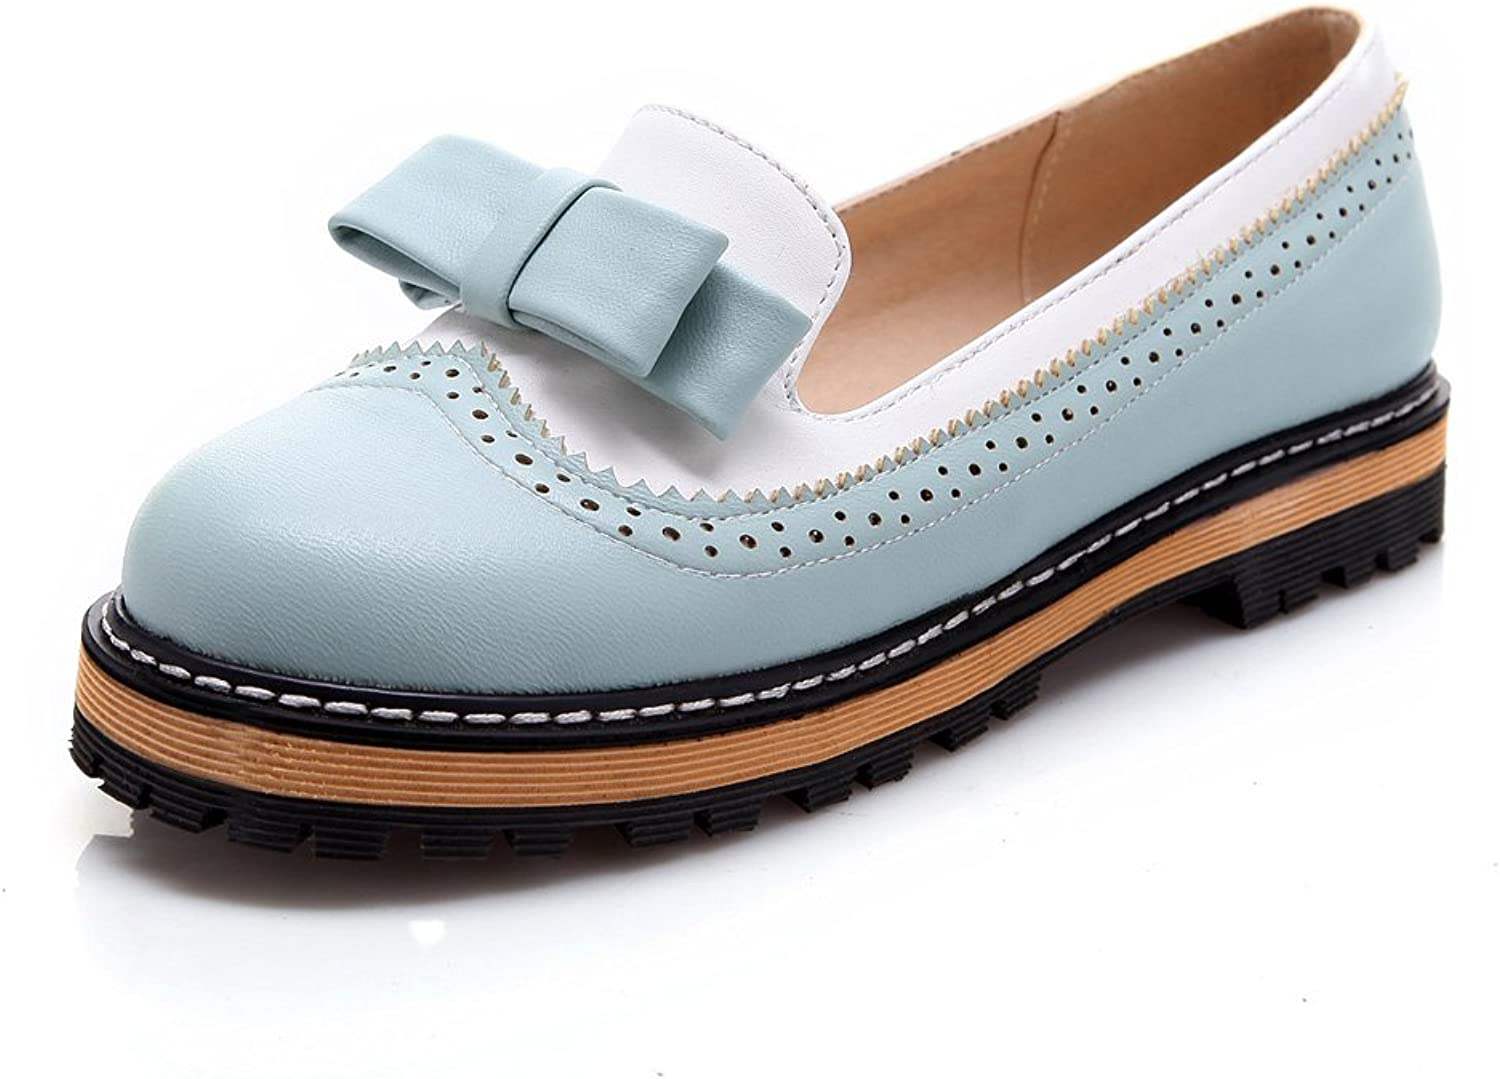 DoraTasia Campus Style Bow-Knot Thick Platform Mixed color Women Loafers Oxford shoes